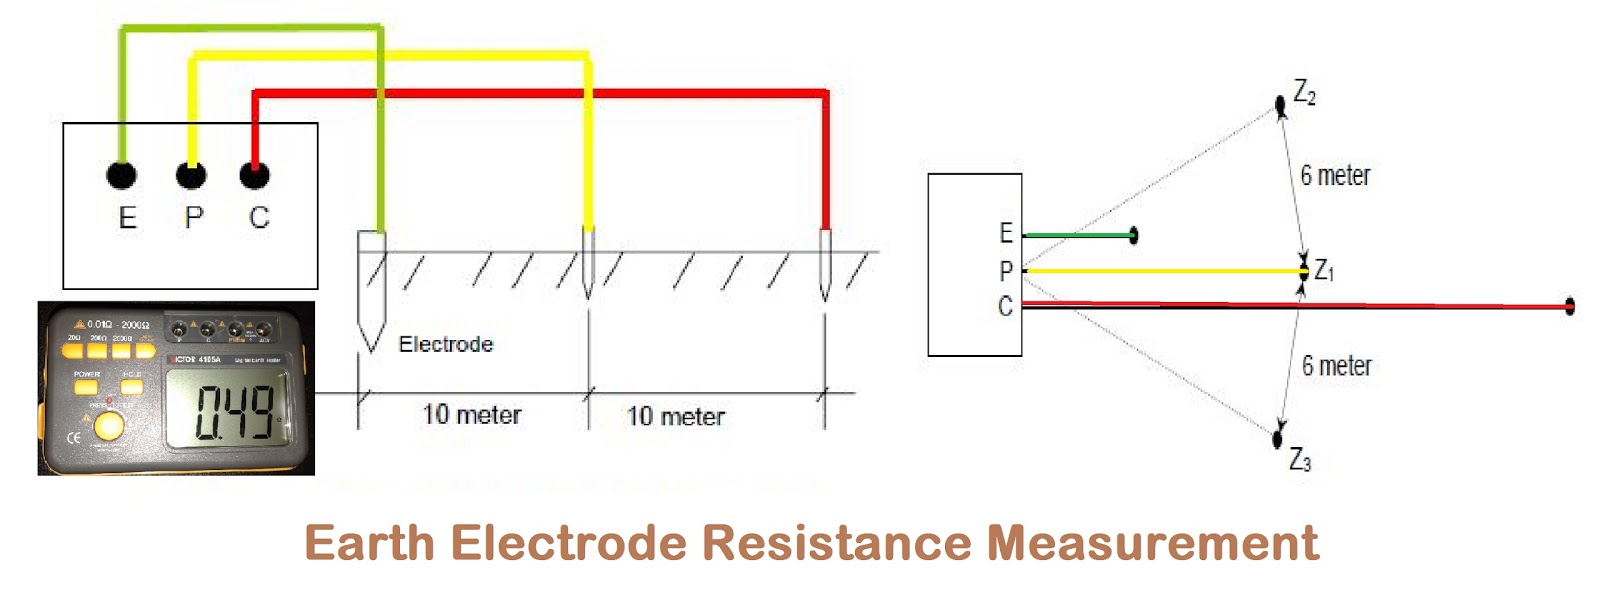 Earth Electrode Resistance Measurement